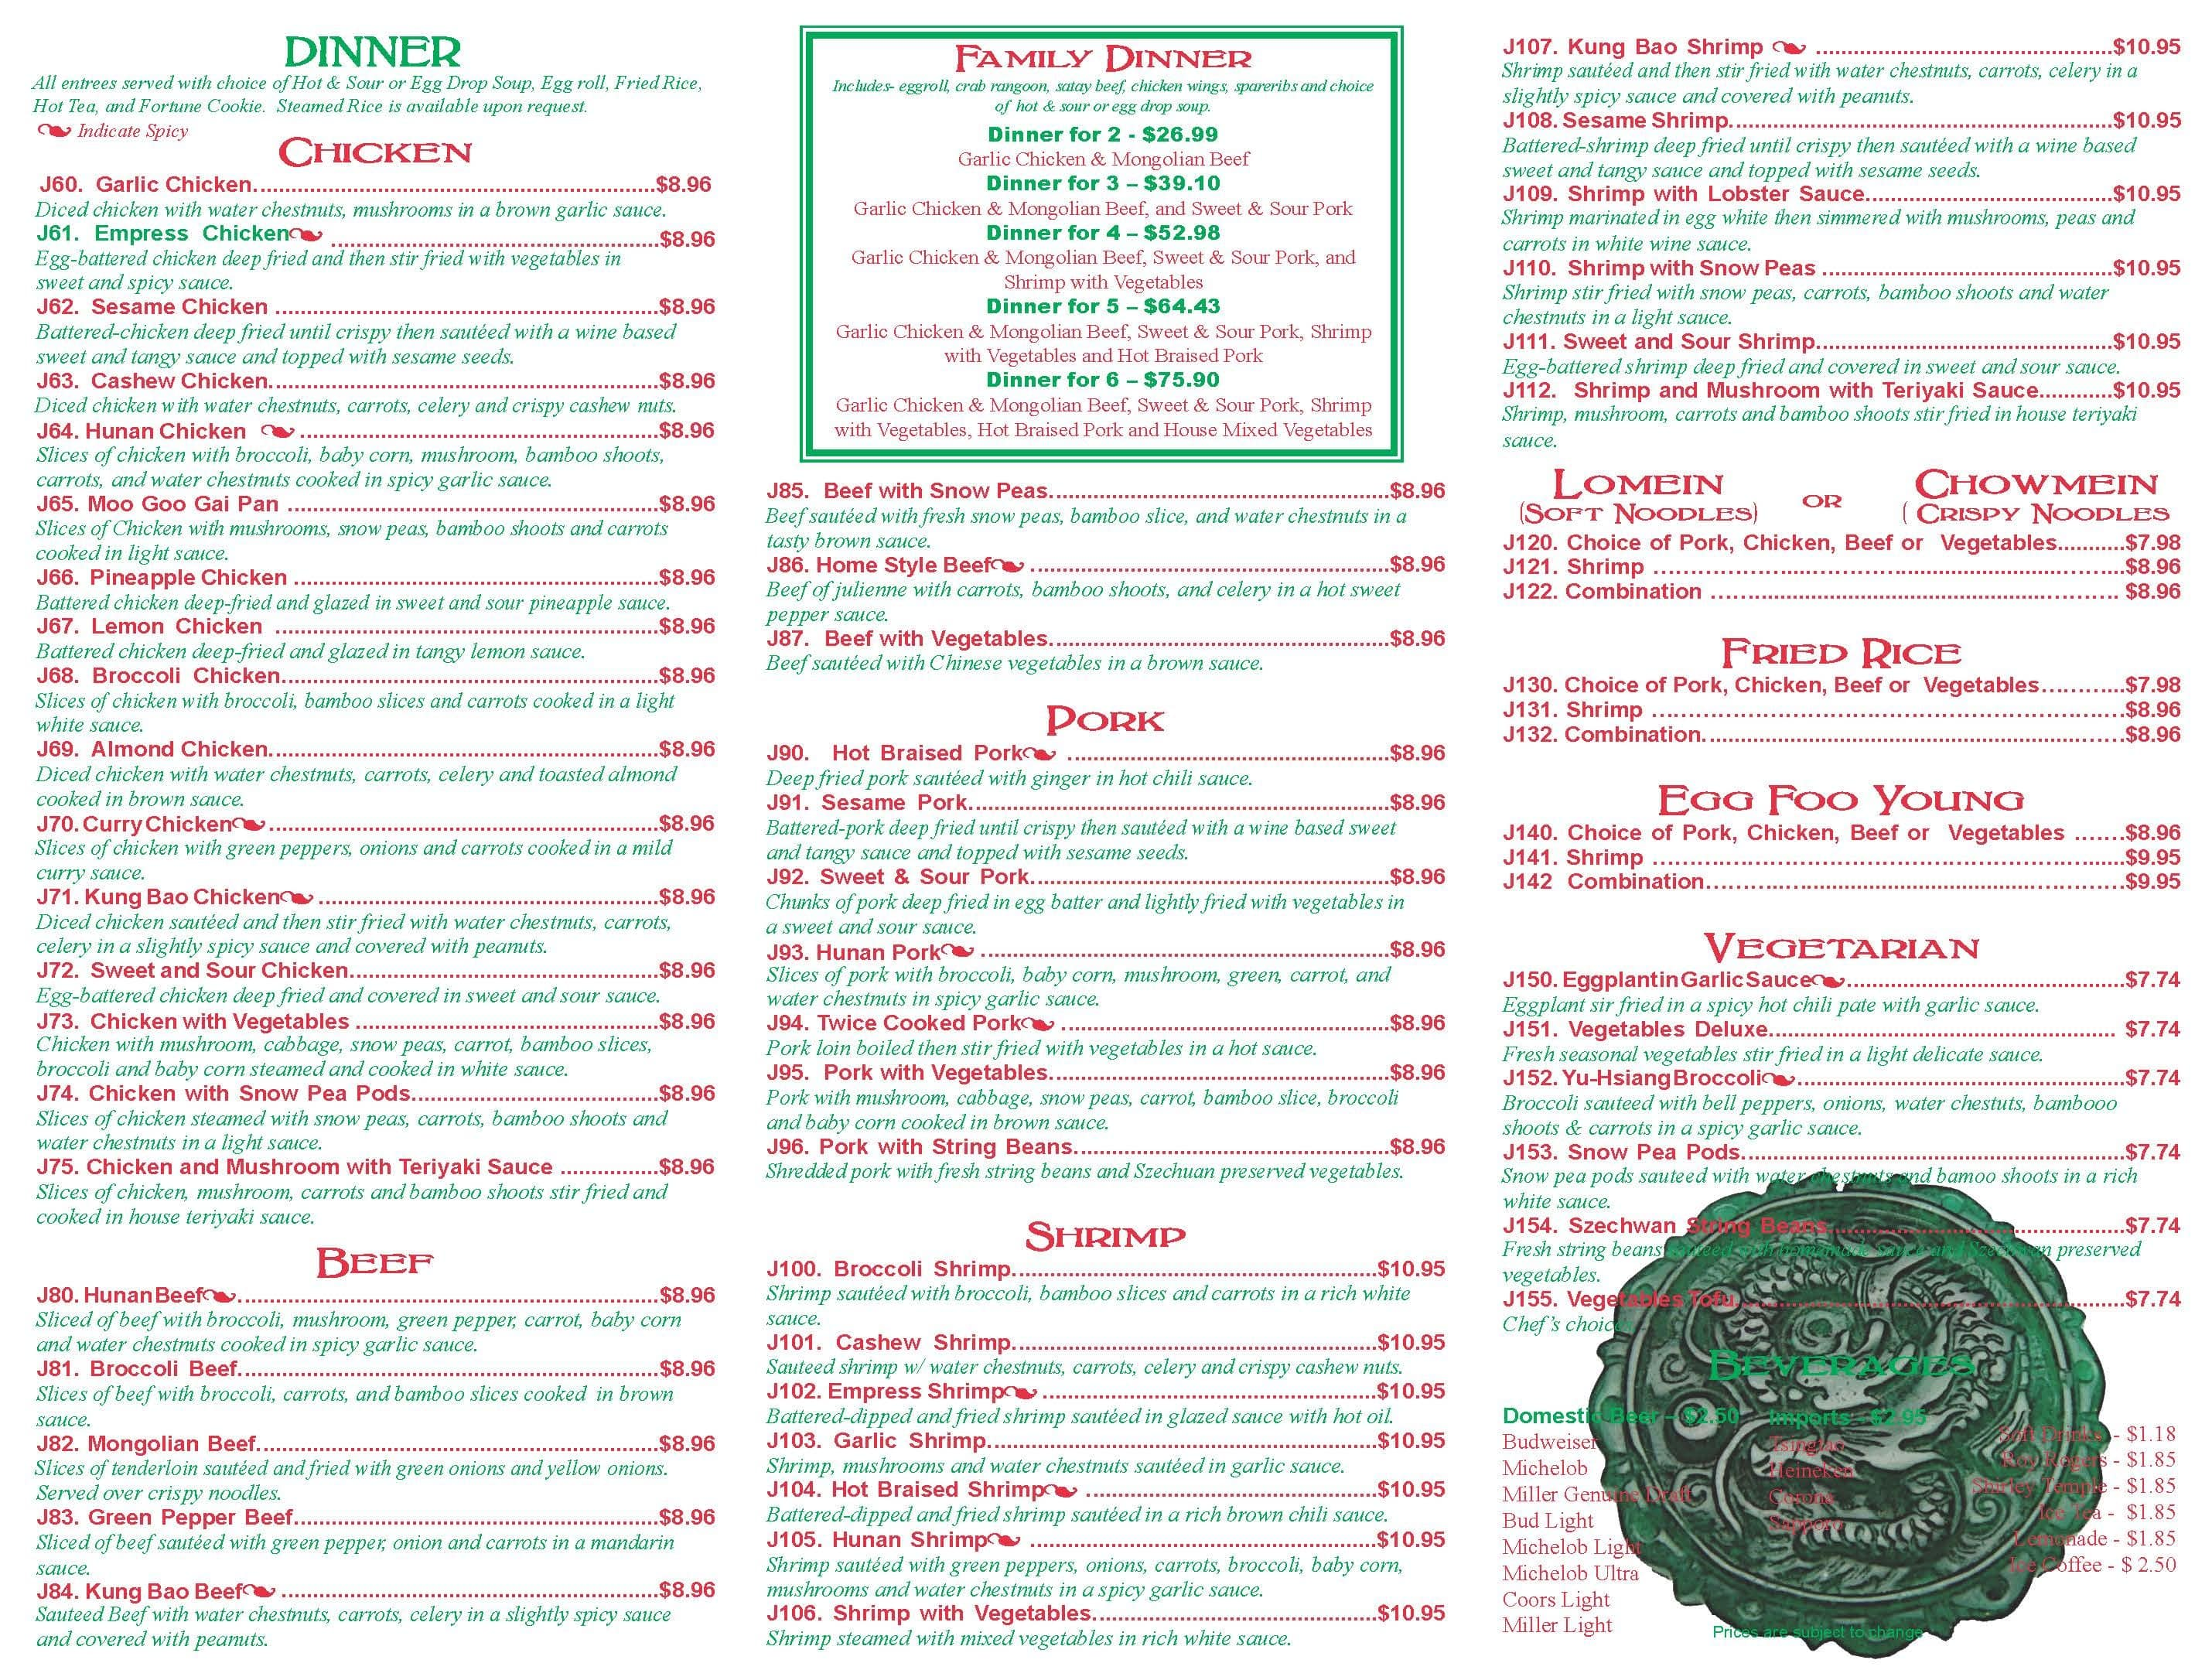 China jade menu menu for china jade west des moines des for Asian cuisine grimes ia menu